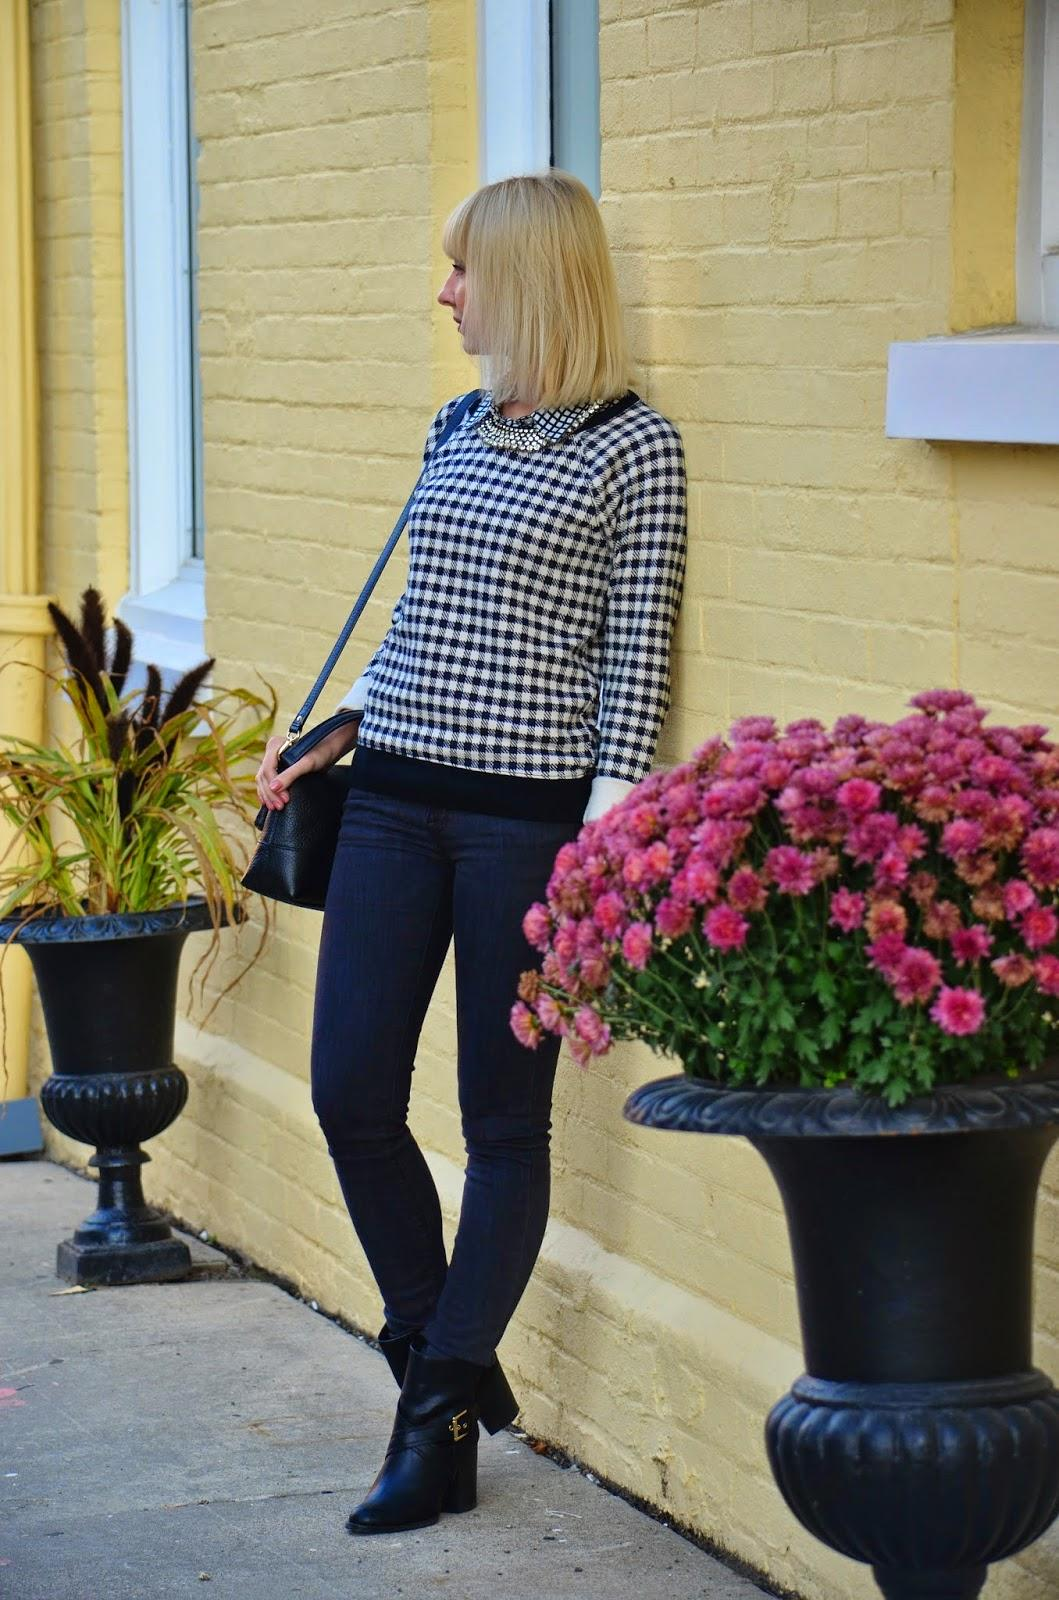 Style, OOTD, casual, business casual, smart casual, J. Crew, J. Crew factory, Zara, Kate Spade, zara jeans, Kate Spade bag, black and white, black and grey, grey, houndstooth